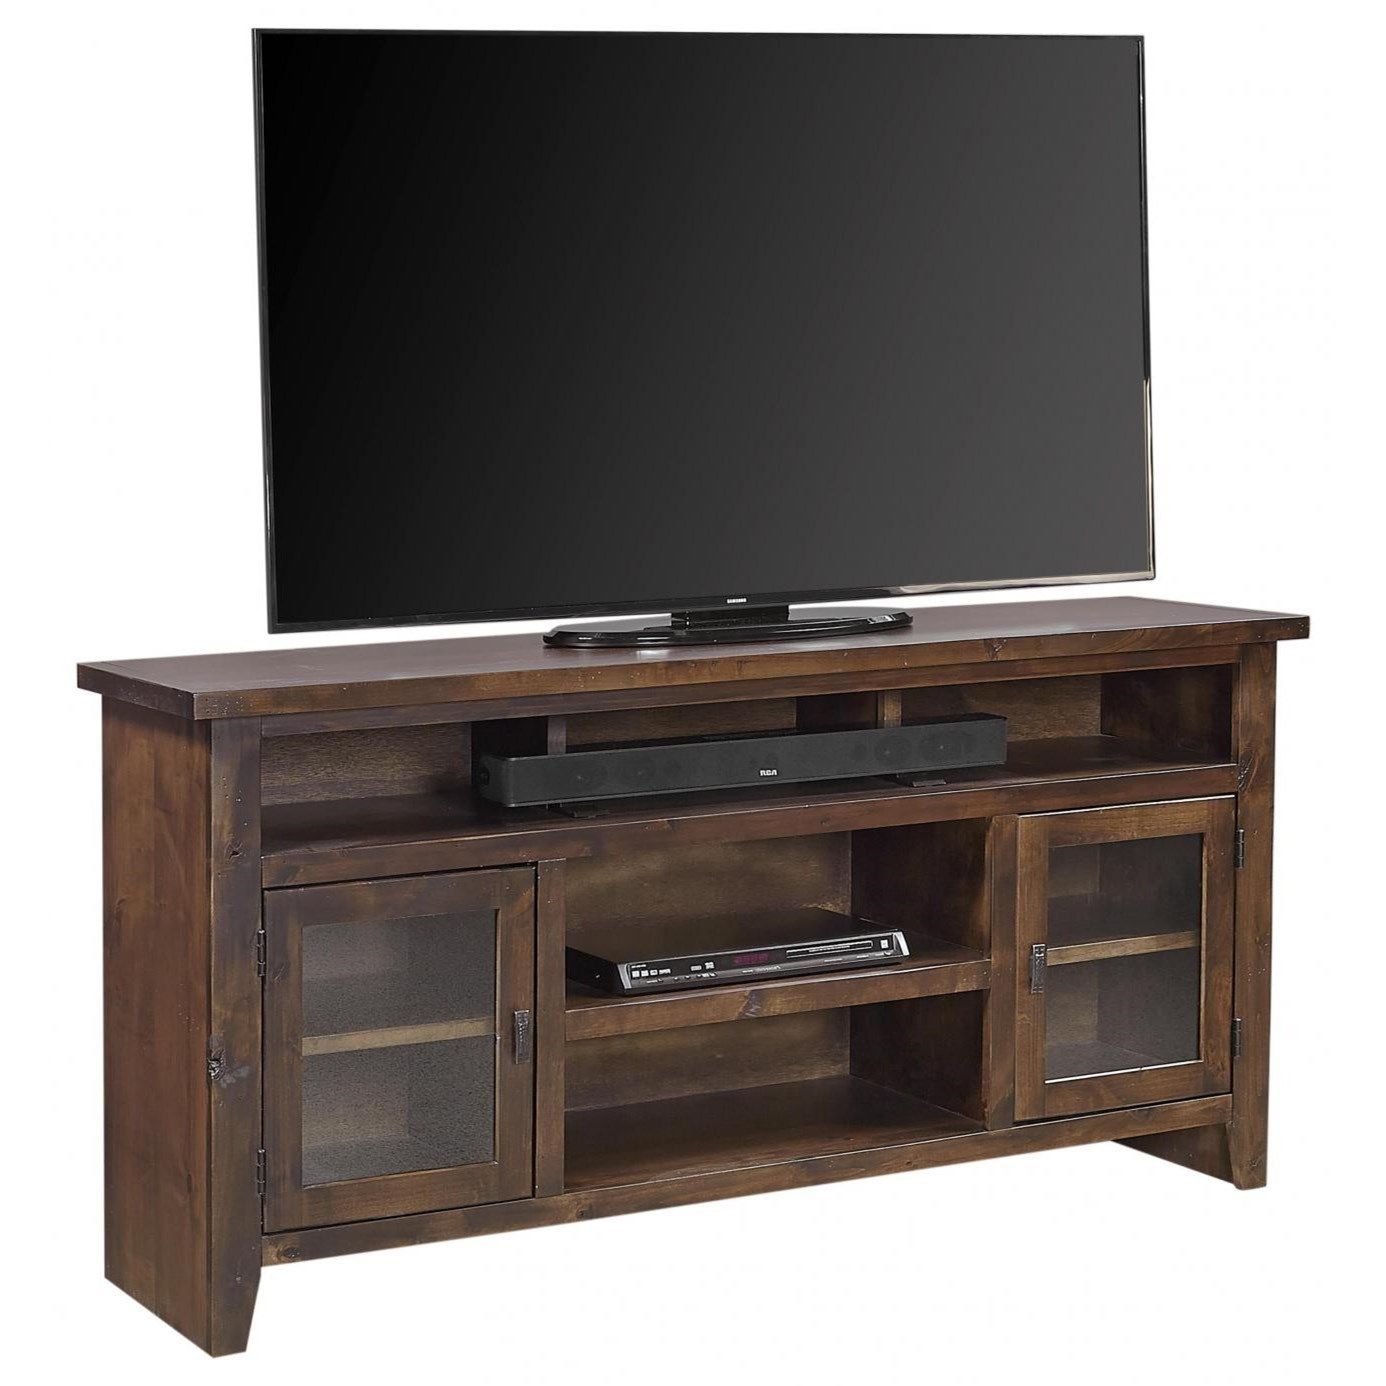 "Alder Grove 65"" Console with Doors by Birch Home at Sprintz Furniture"